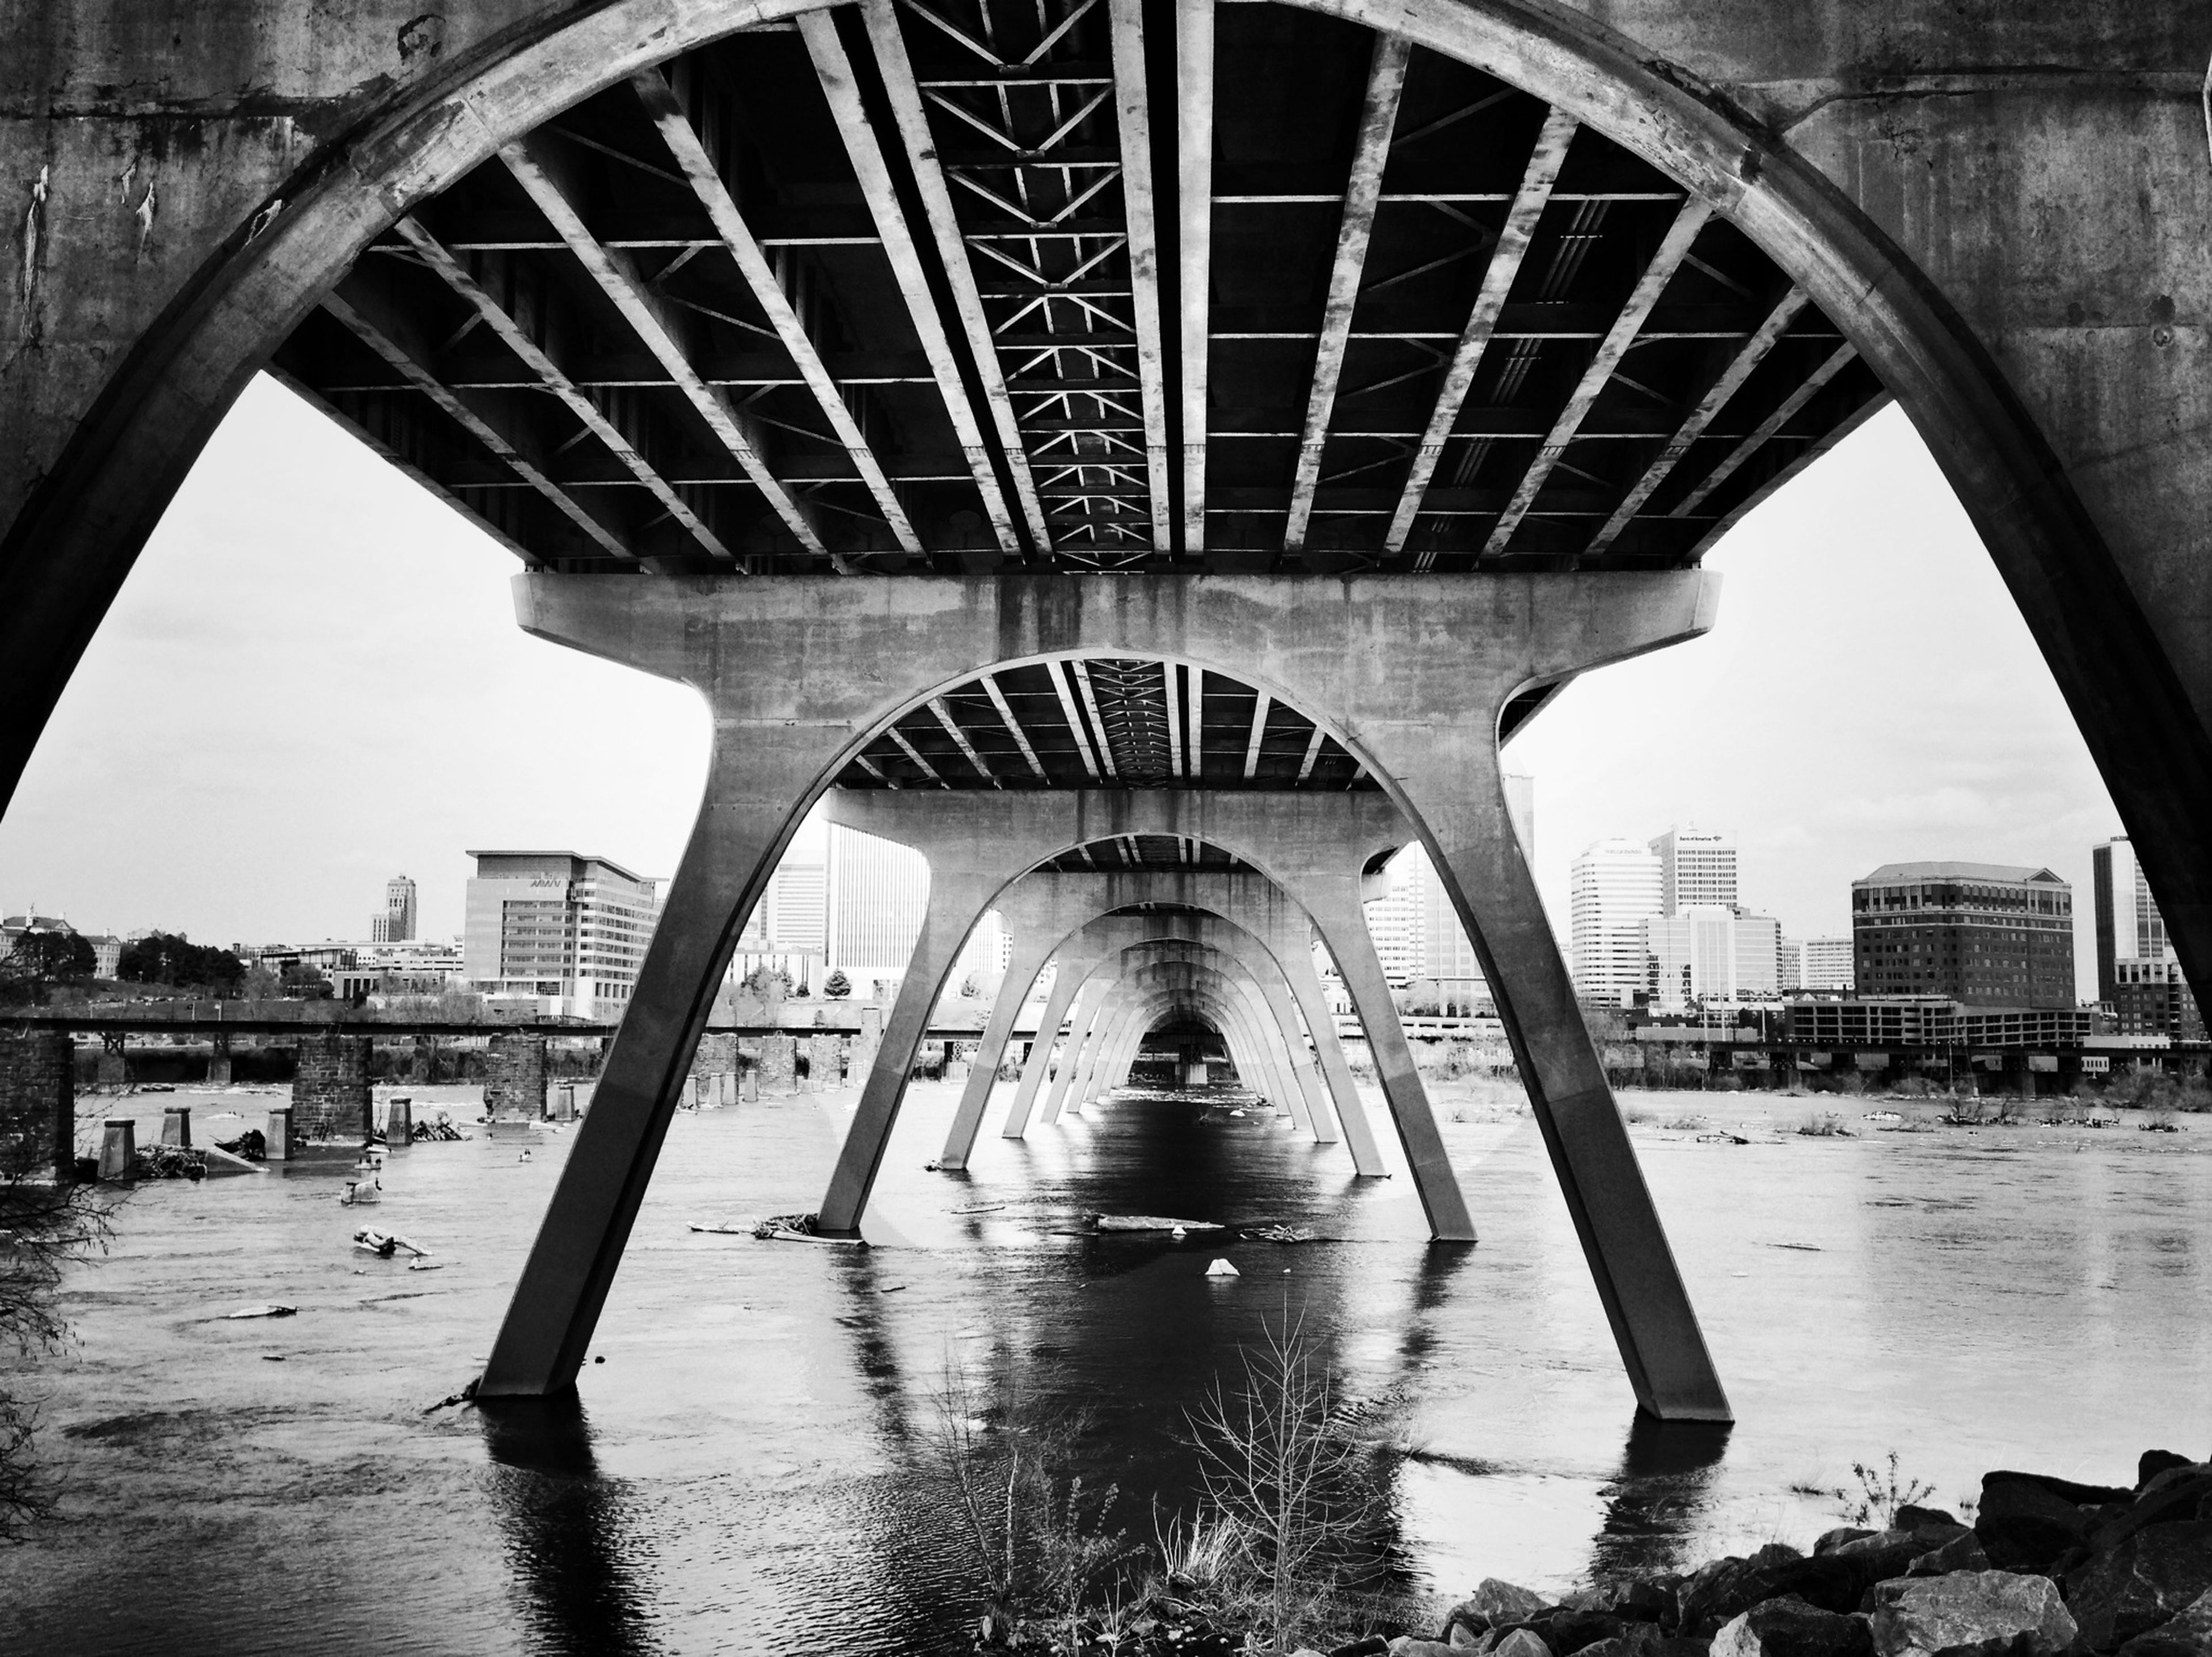 architecture, built structure, arch, bridge - man made structure, water, building exterior, connection, architectural column, city, river, sky, reflection, bridge, arch bridge, column, engineering, incidental people, travel destinations, day, city life